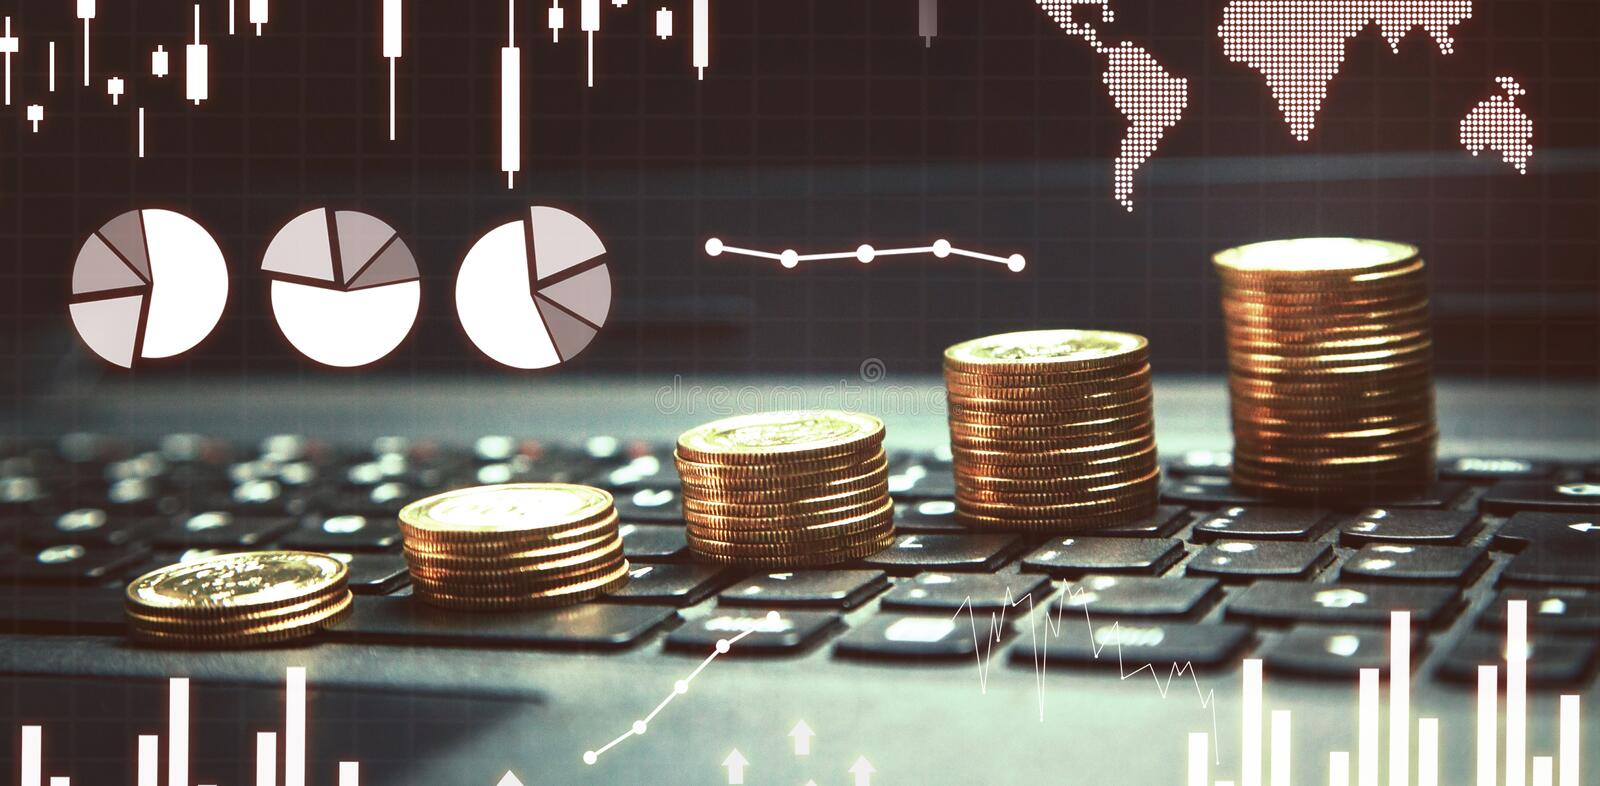 Stack of money coins on laptop keyboard with financial graphs royalty free stock photo